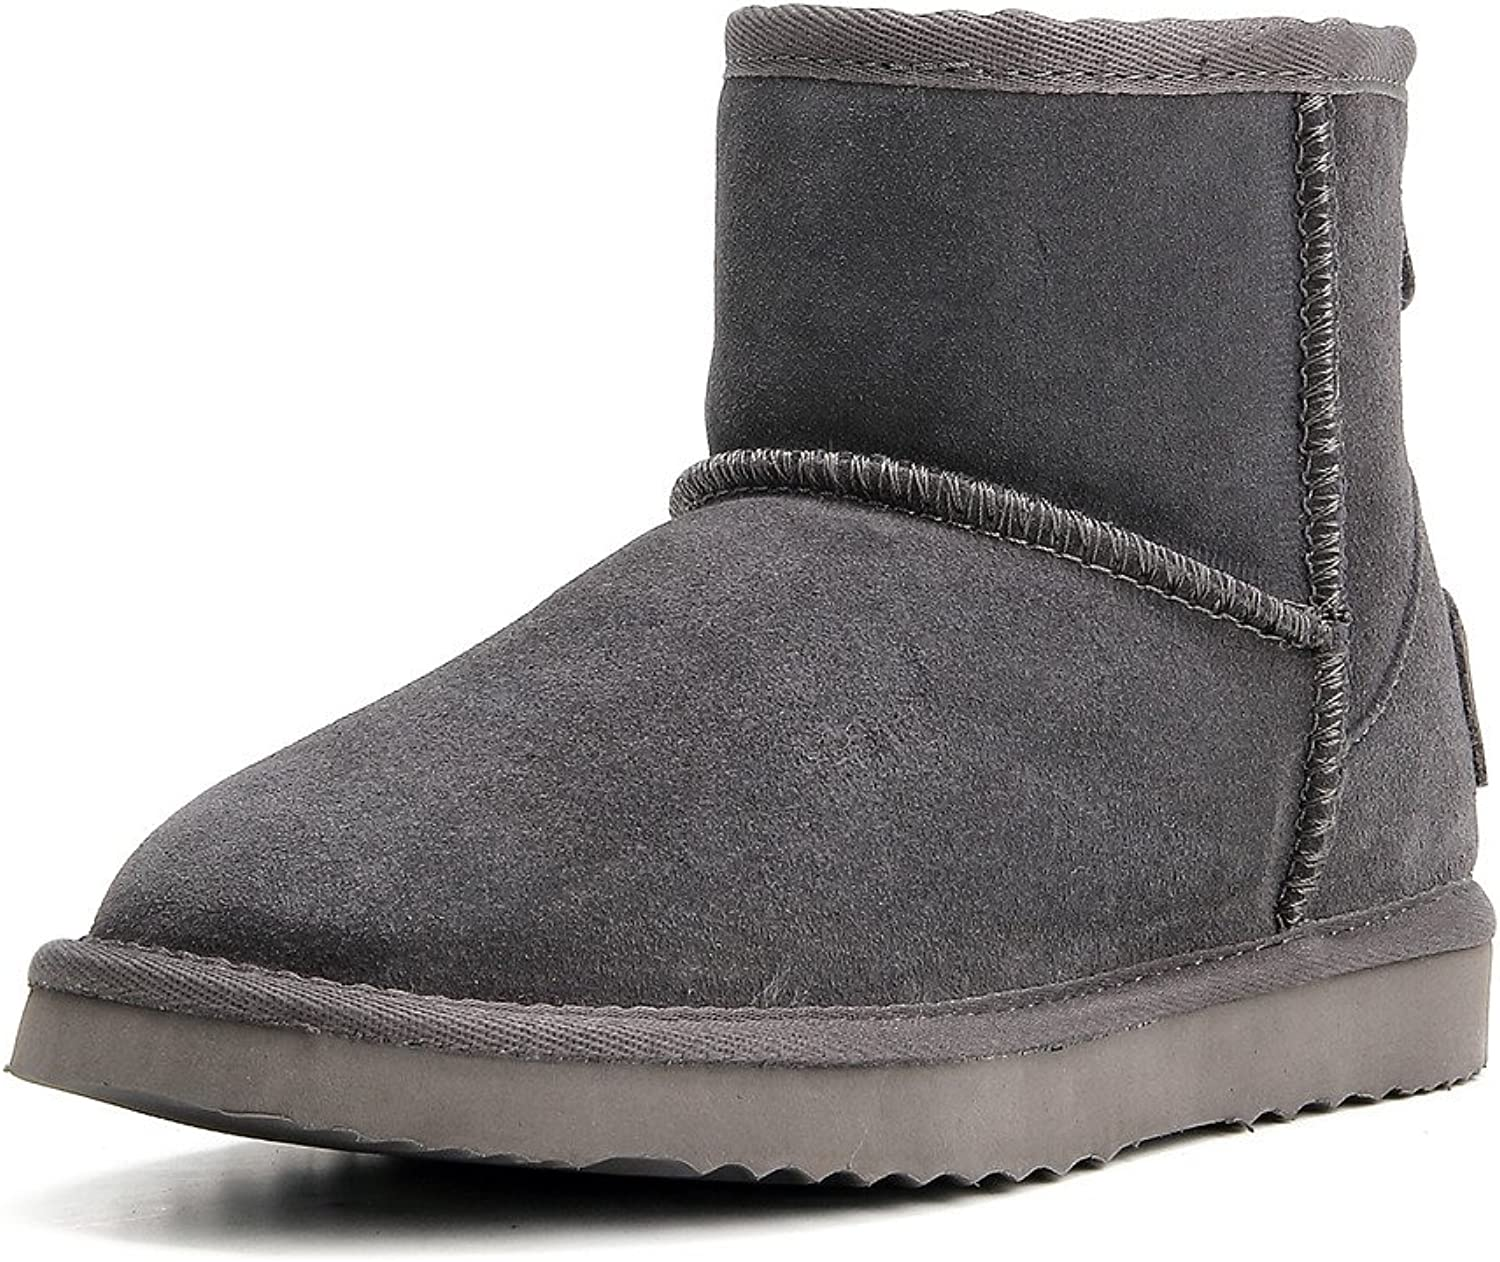 Ausland--Women's Classic Mini boots, Short Snow Boots, With Water-resistant Vamp